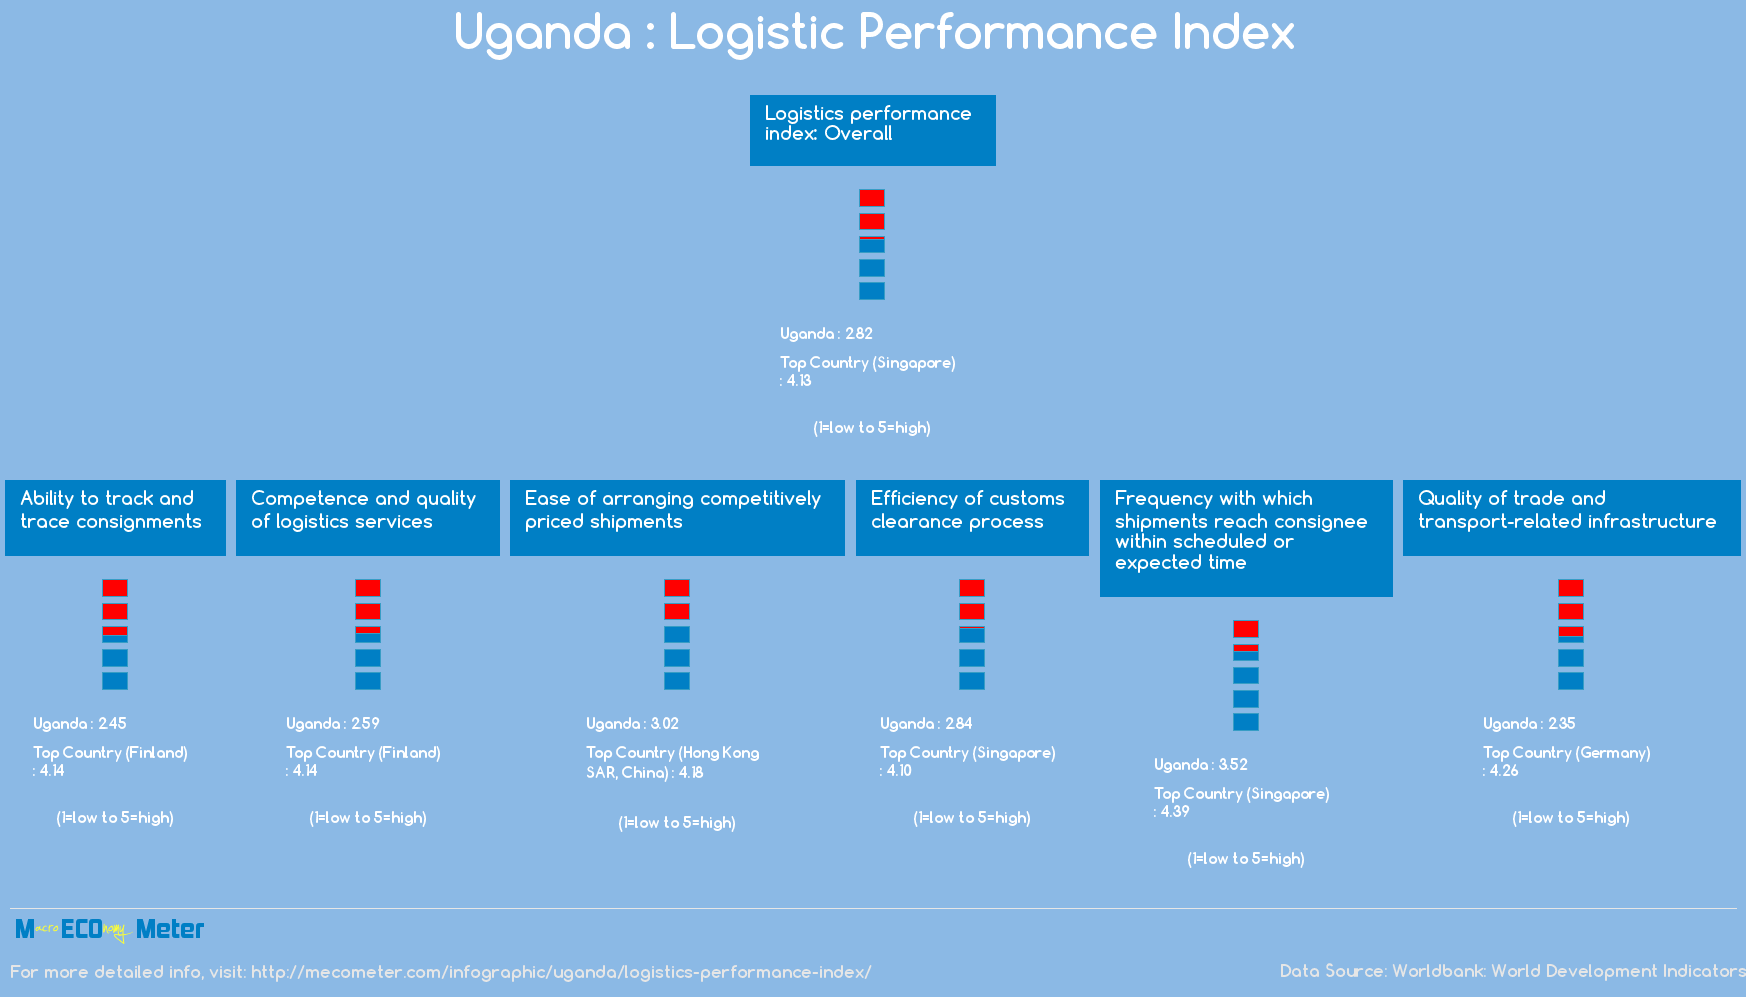 Uganda : Logistic Performance Index